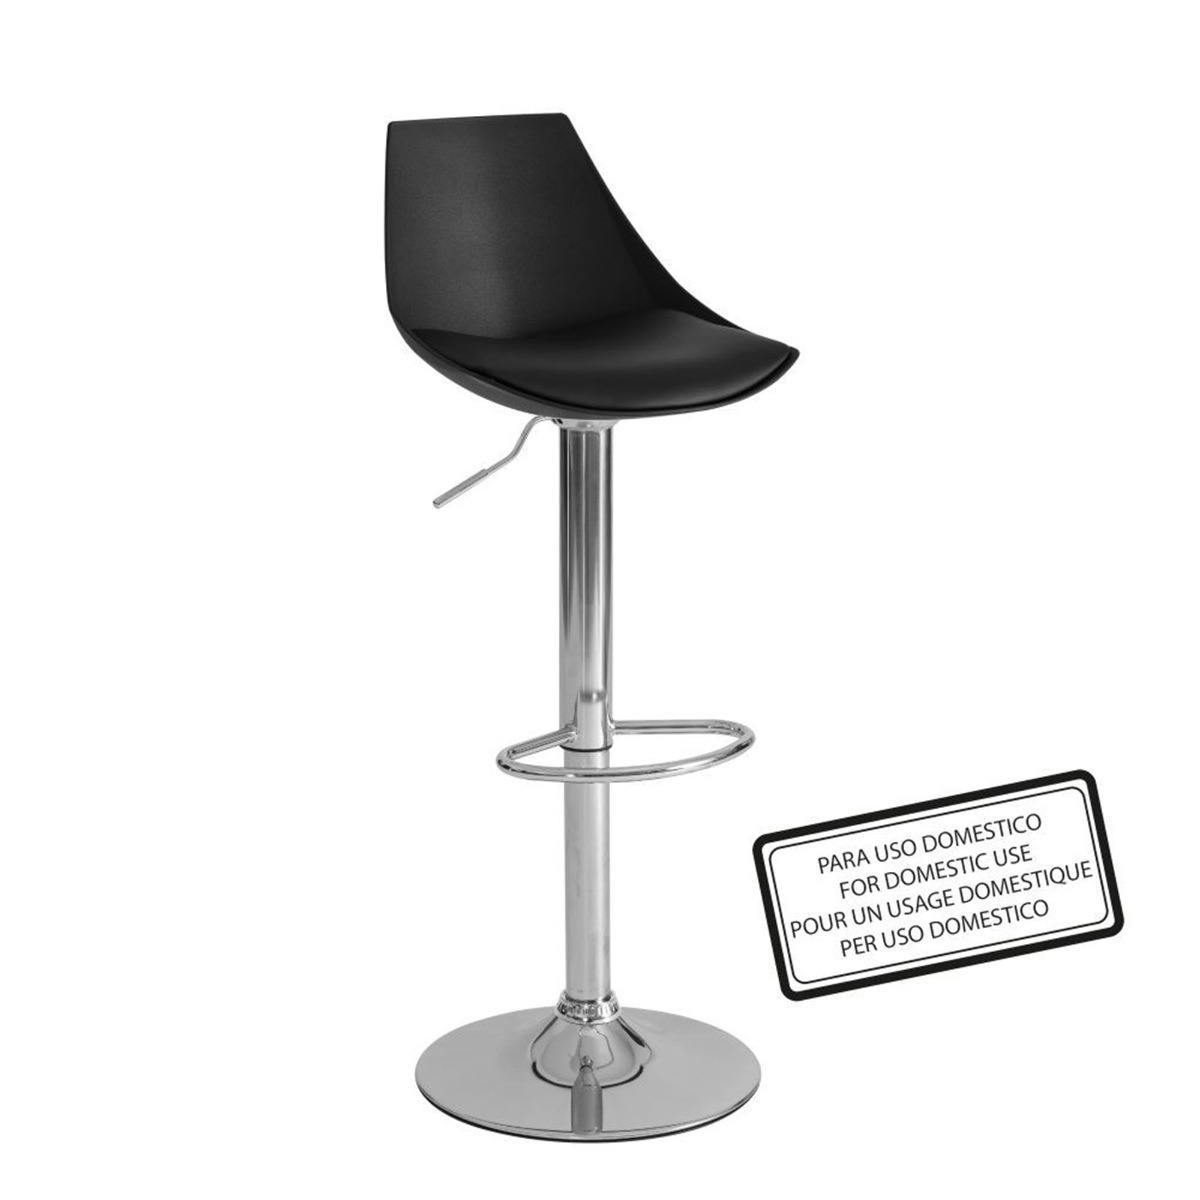 Silla alta para bar o banco de cocina color negro for Sillas para barra americana